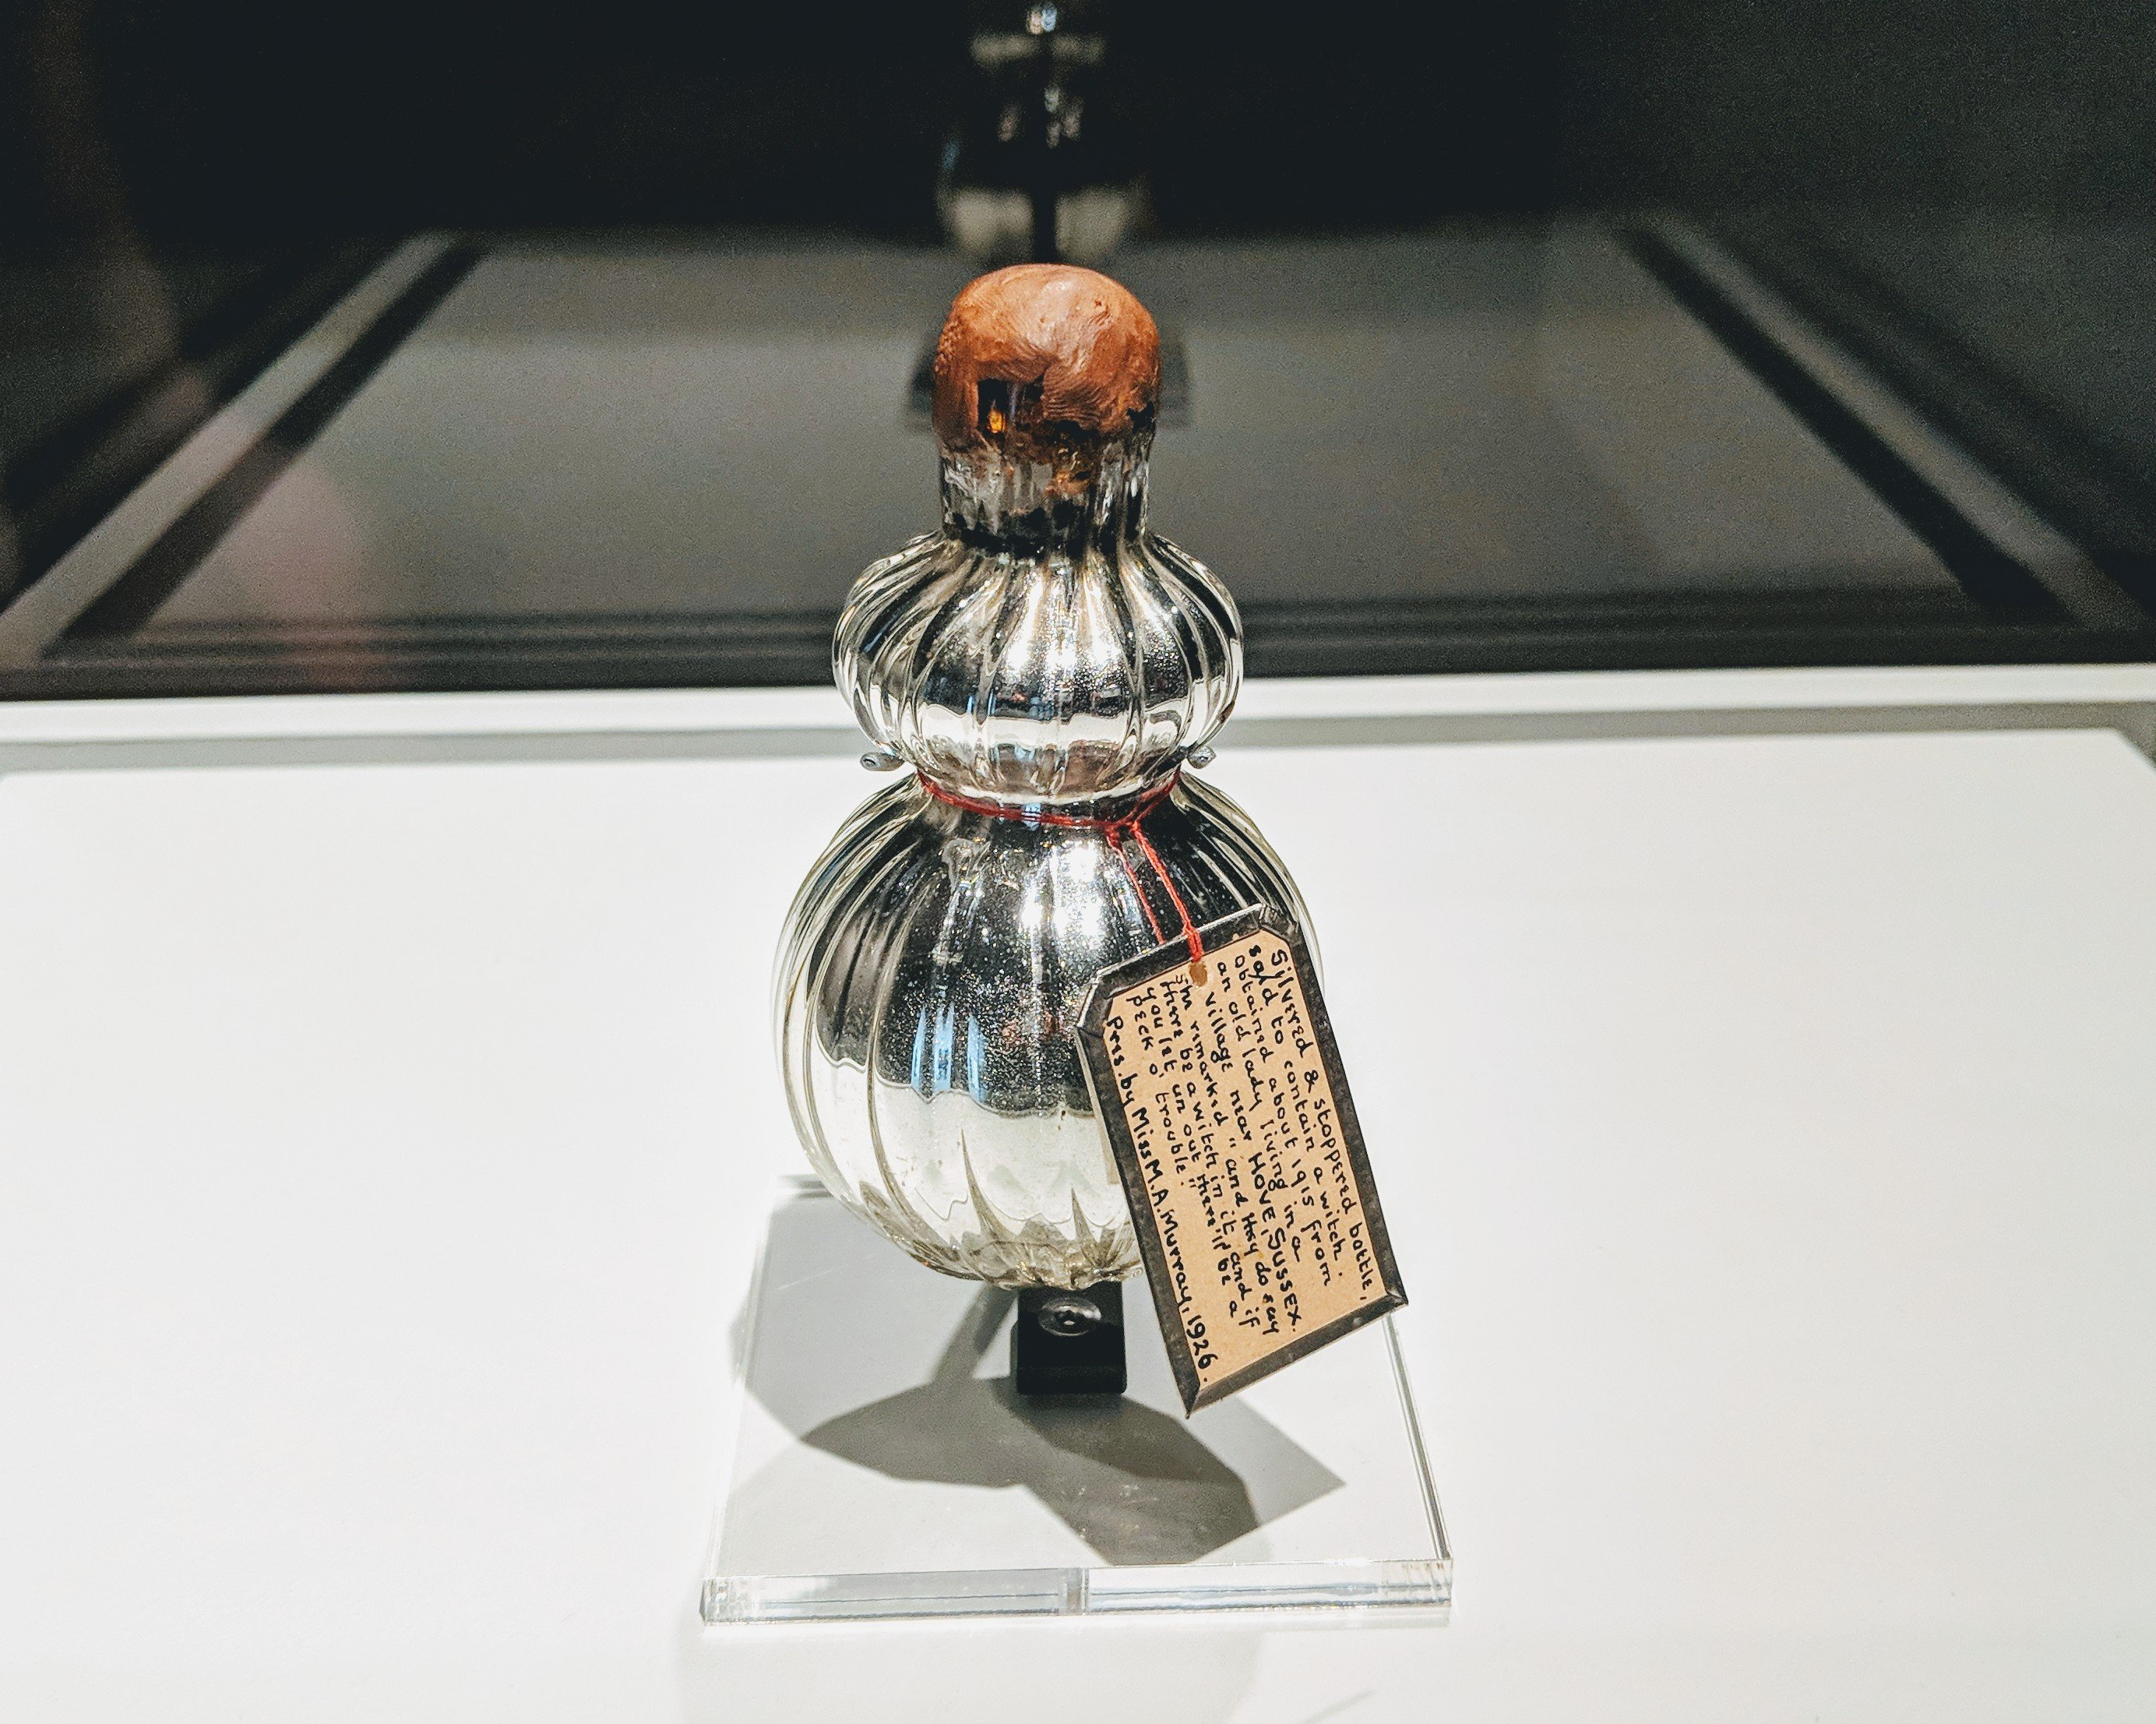 An unopened silver bottle, sealed with wax, believed to contain a witch, on display at the Spellbound exhibition at the Ashmolean in Oxford, UK.